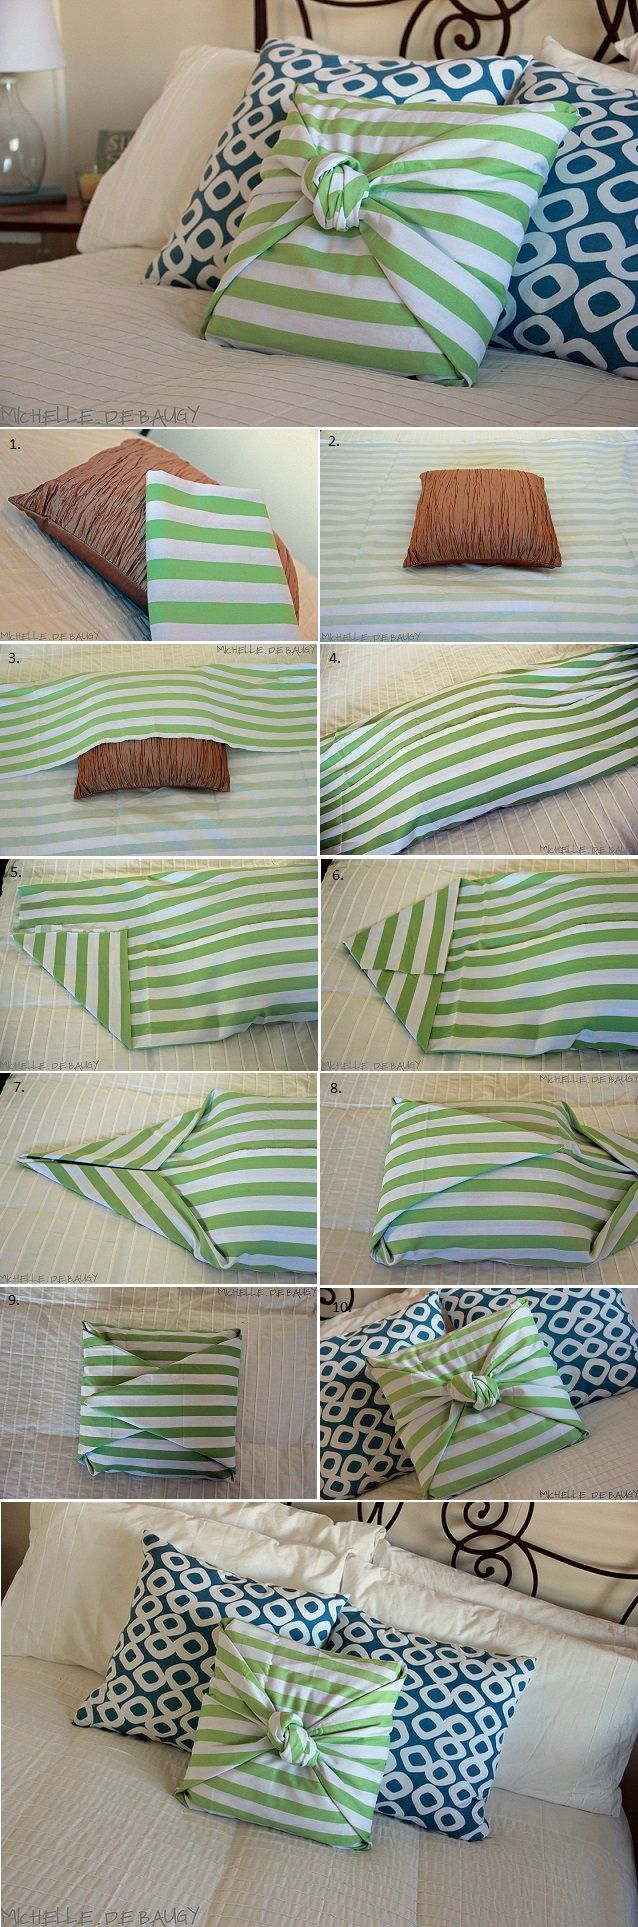 Here is a great idea to decorate your pillows. The method is very easy to apply and you will not need materials or sewing. All that is required for this action